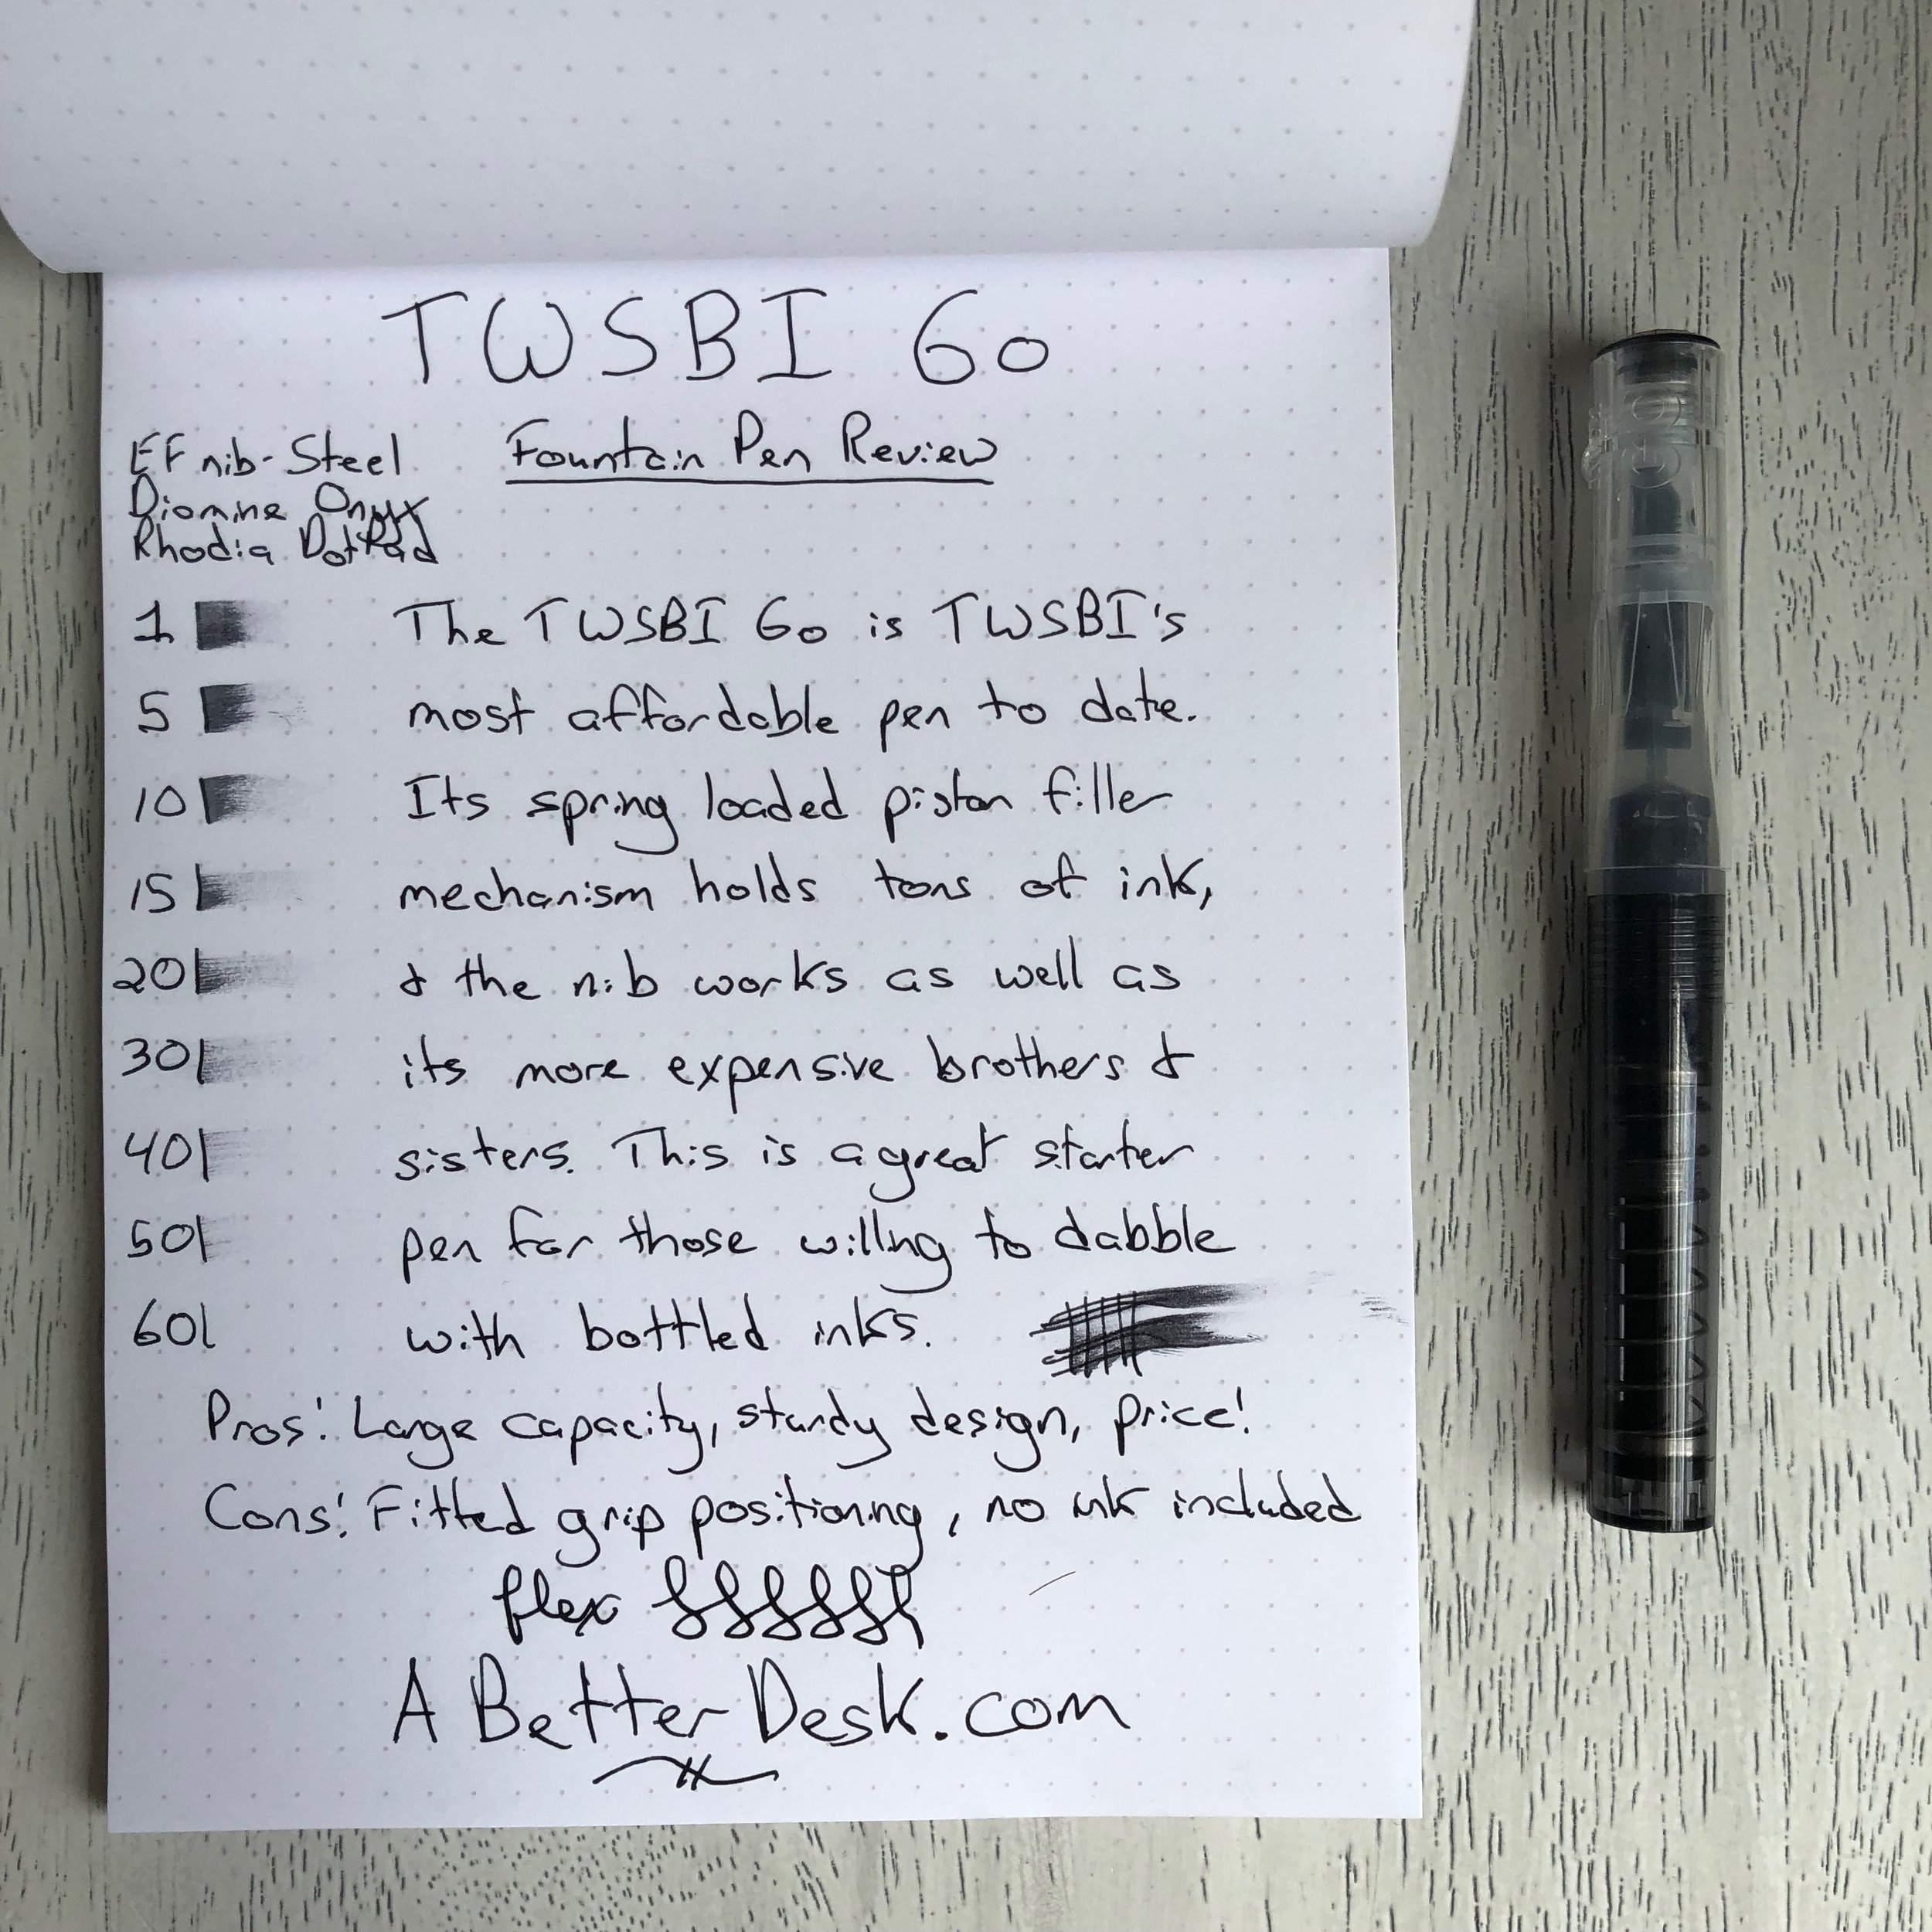 TWSBI GO Foutain Pen Review Handwritten Review .jpg